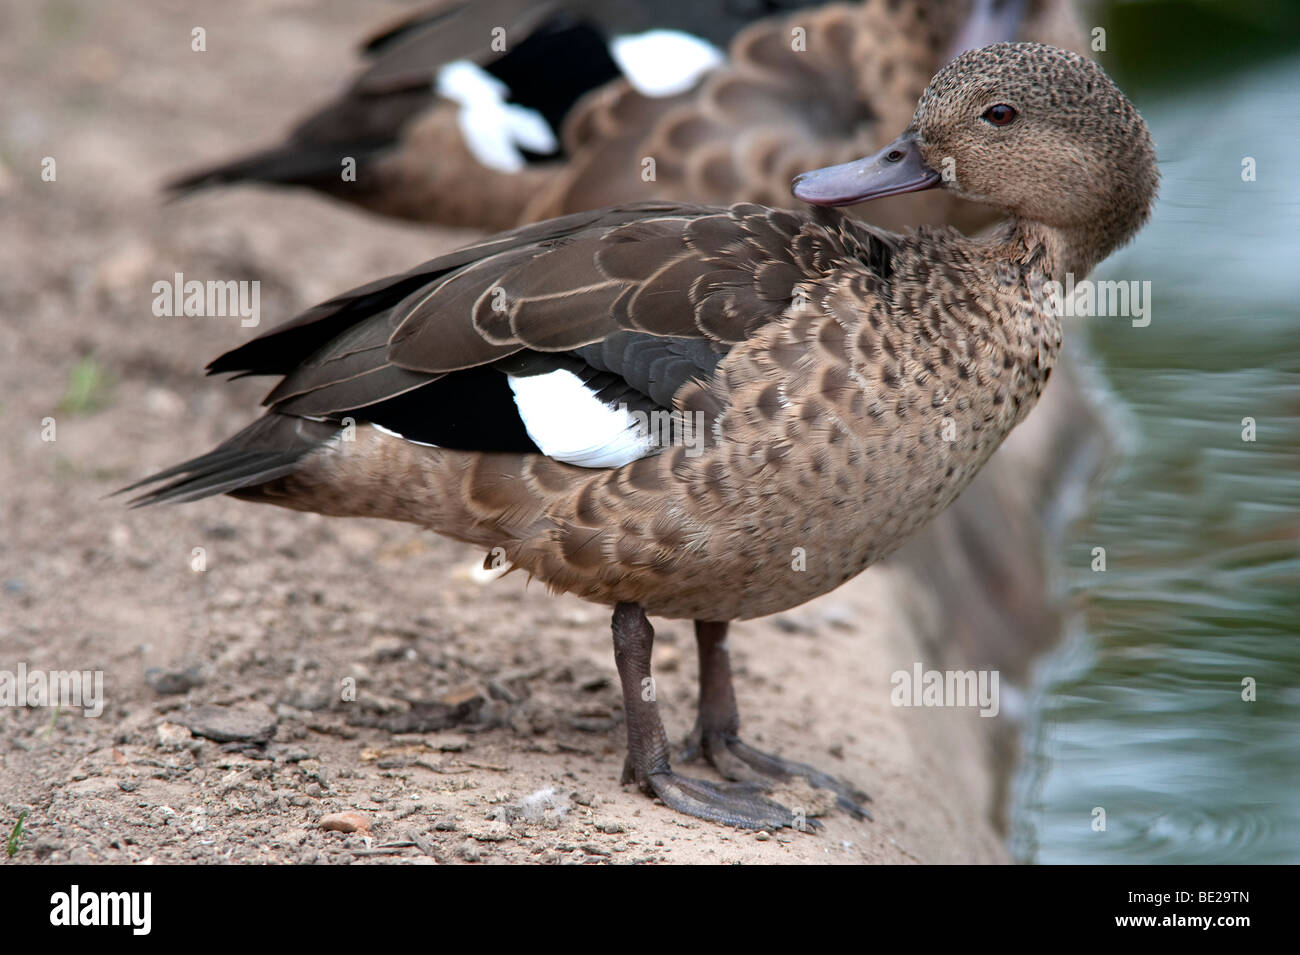 Madagascar Teal Anas bernieri standing at waters edge preening feathers Endangered  IUCN Red List CITES Appendix - Stock Image